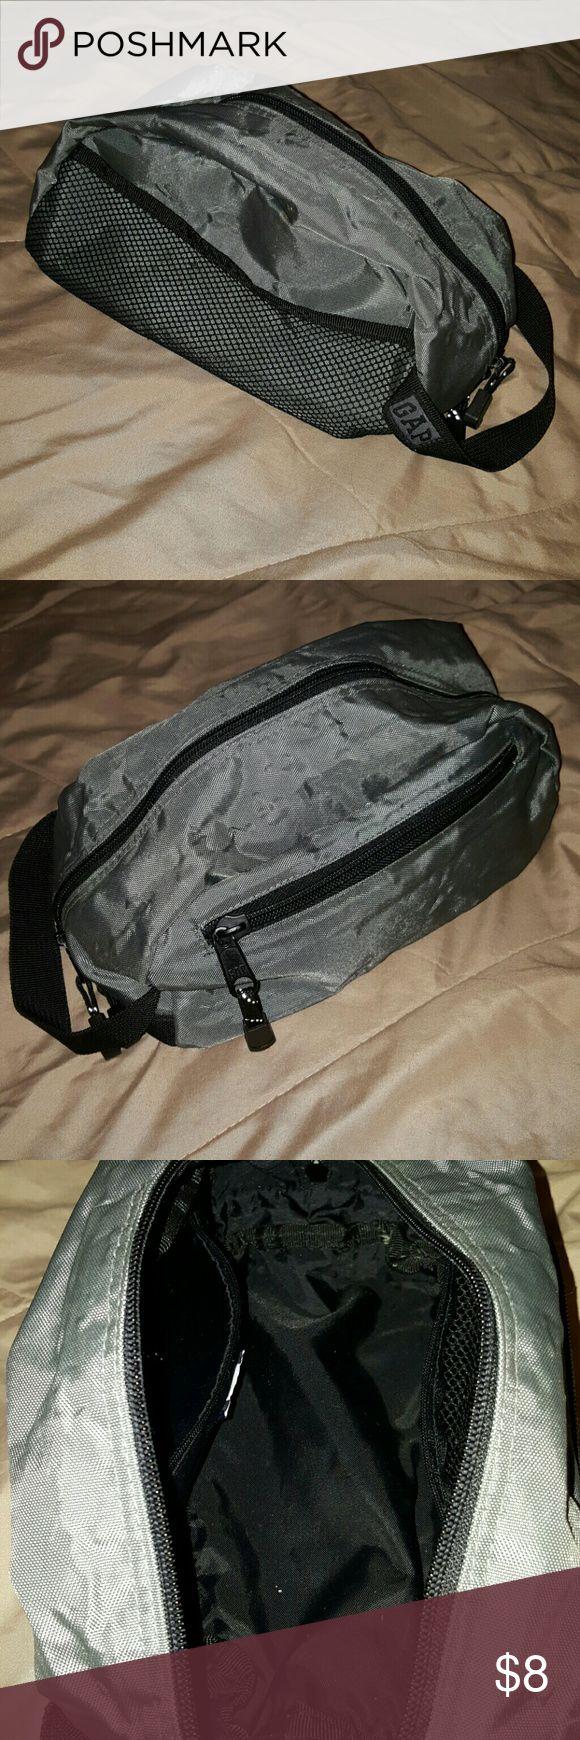 Gap Toiletry Bag Grey nylon toiletry bag. Two outside pockets  (one mesh one zip), two inside pockets (one mesh one zip). Great for traveling. Lots of use left in this bag! No damages! GAP Bags Cosmetic Bags & Cases